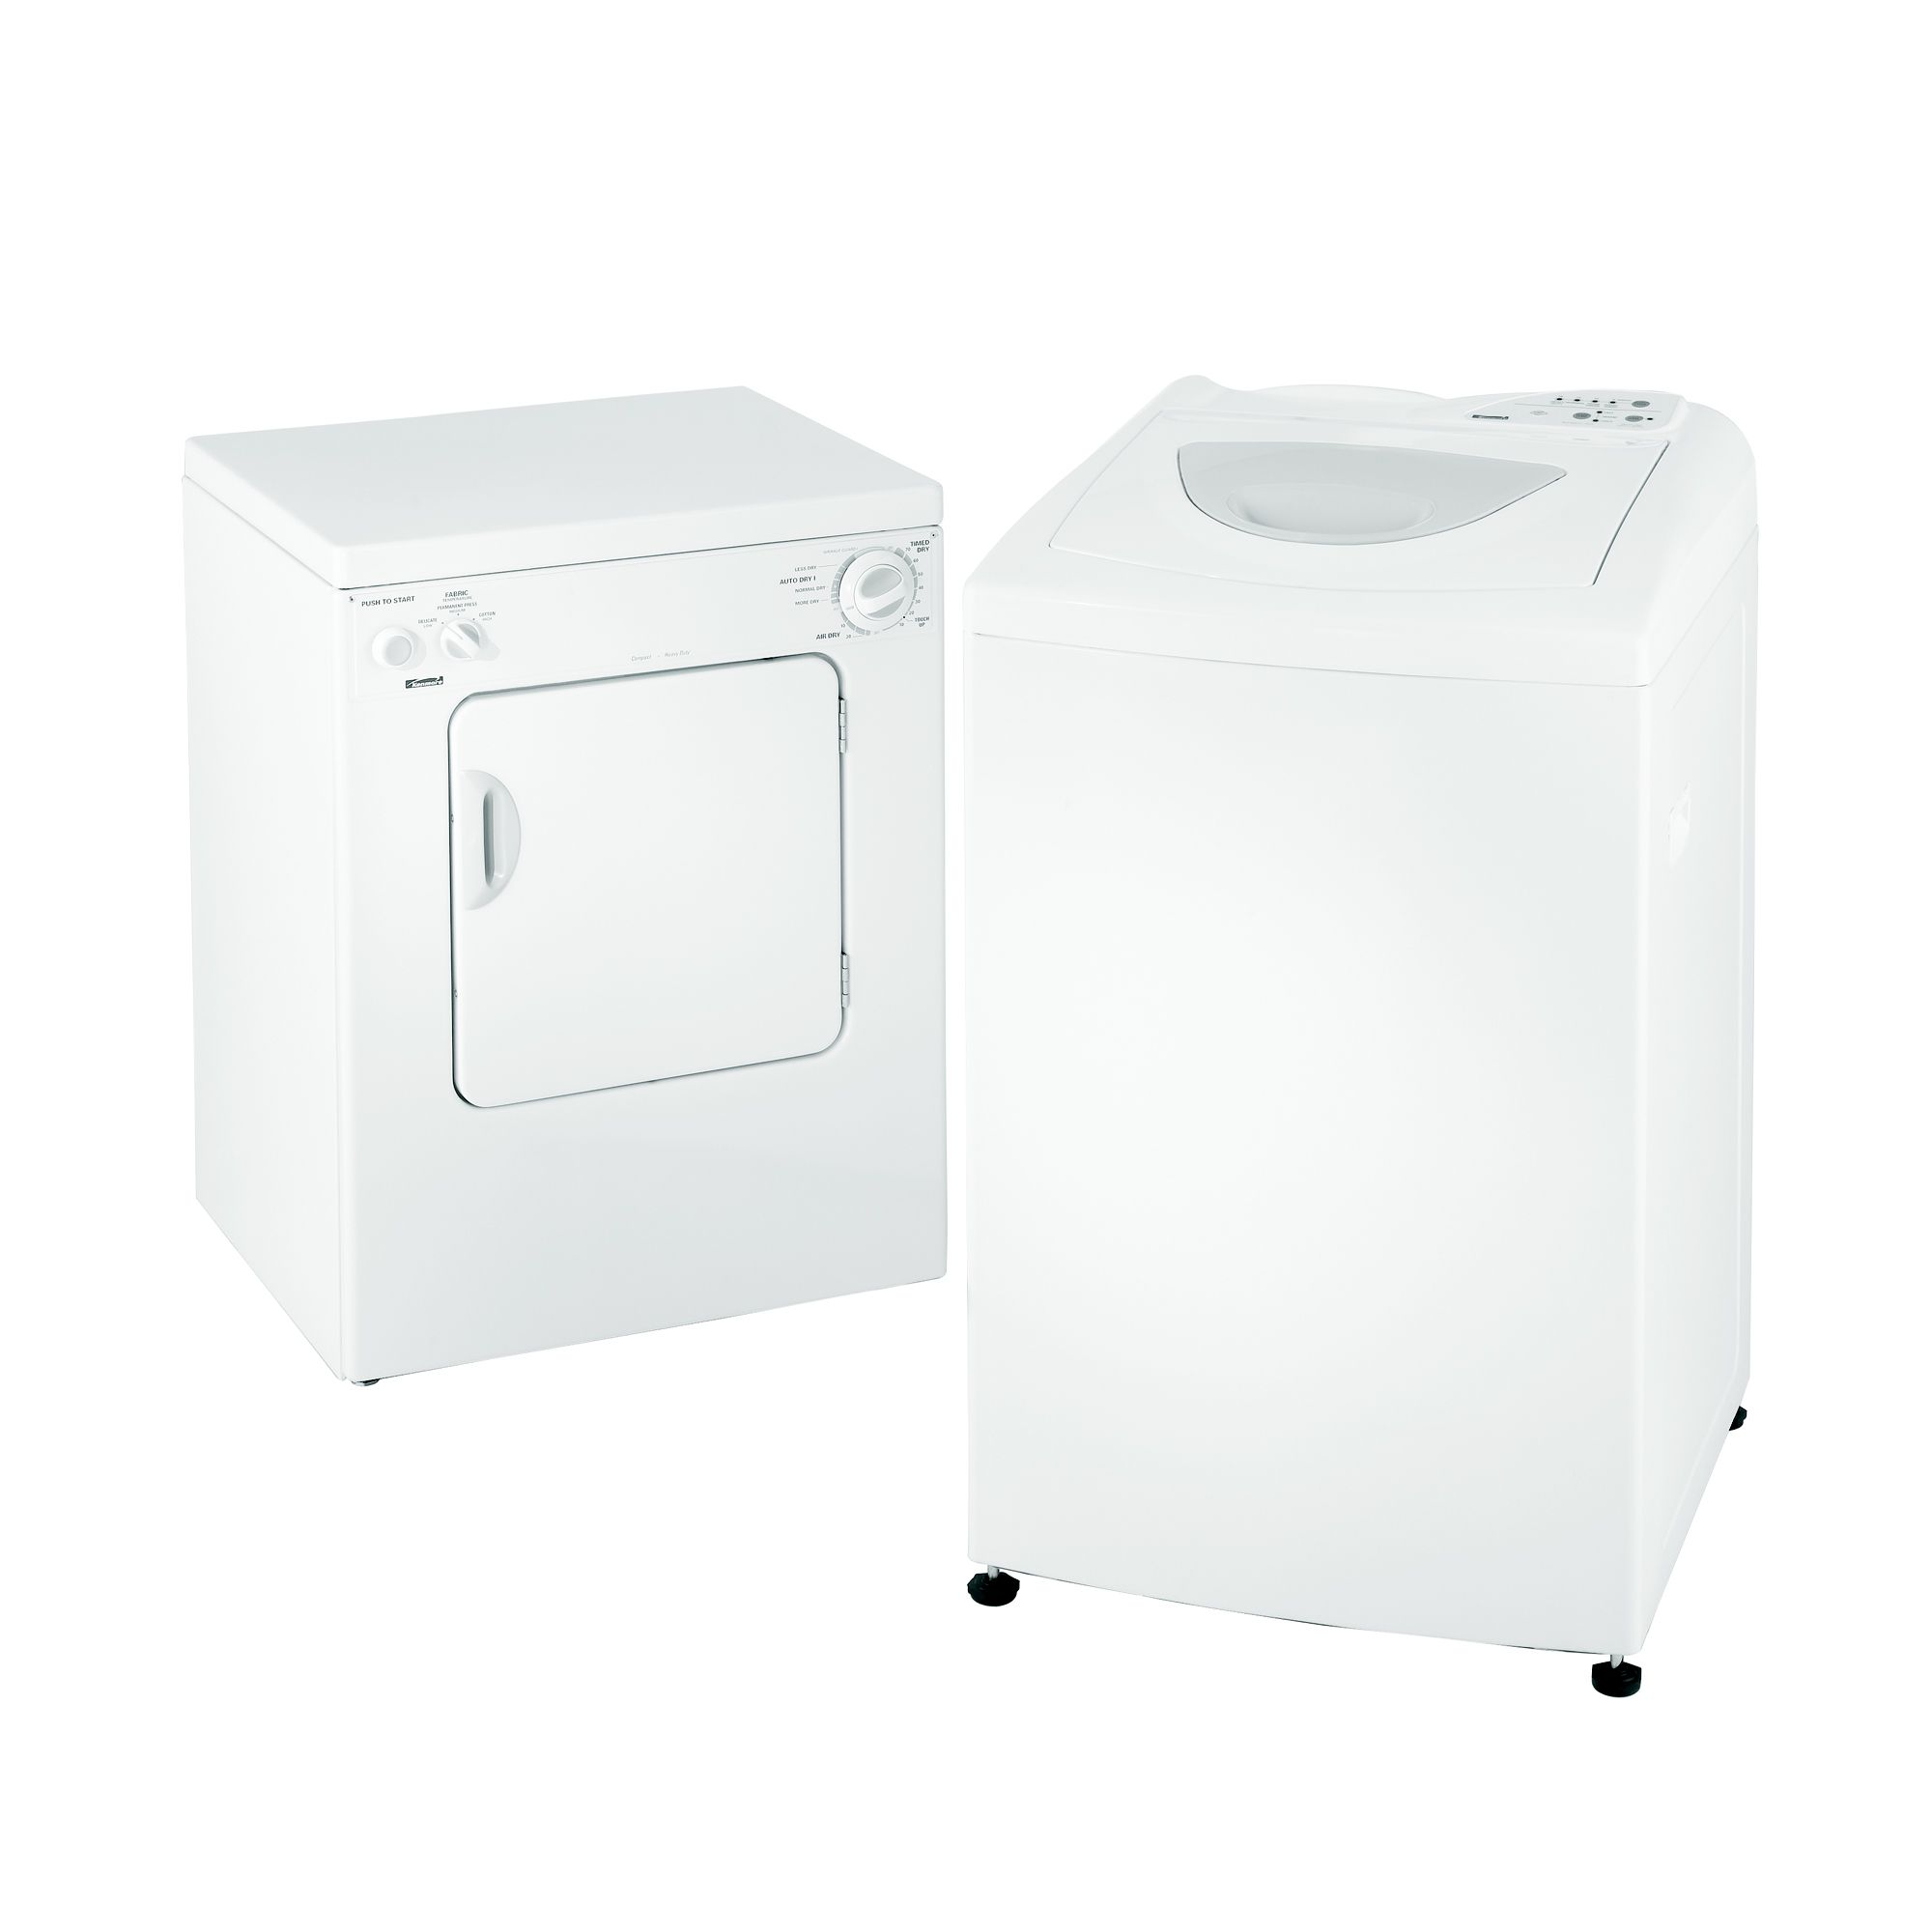 Kenmore 84182 3.4 cu. ft. Compact Stackable Dryer - White